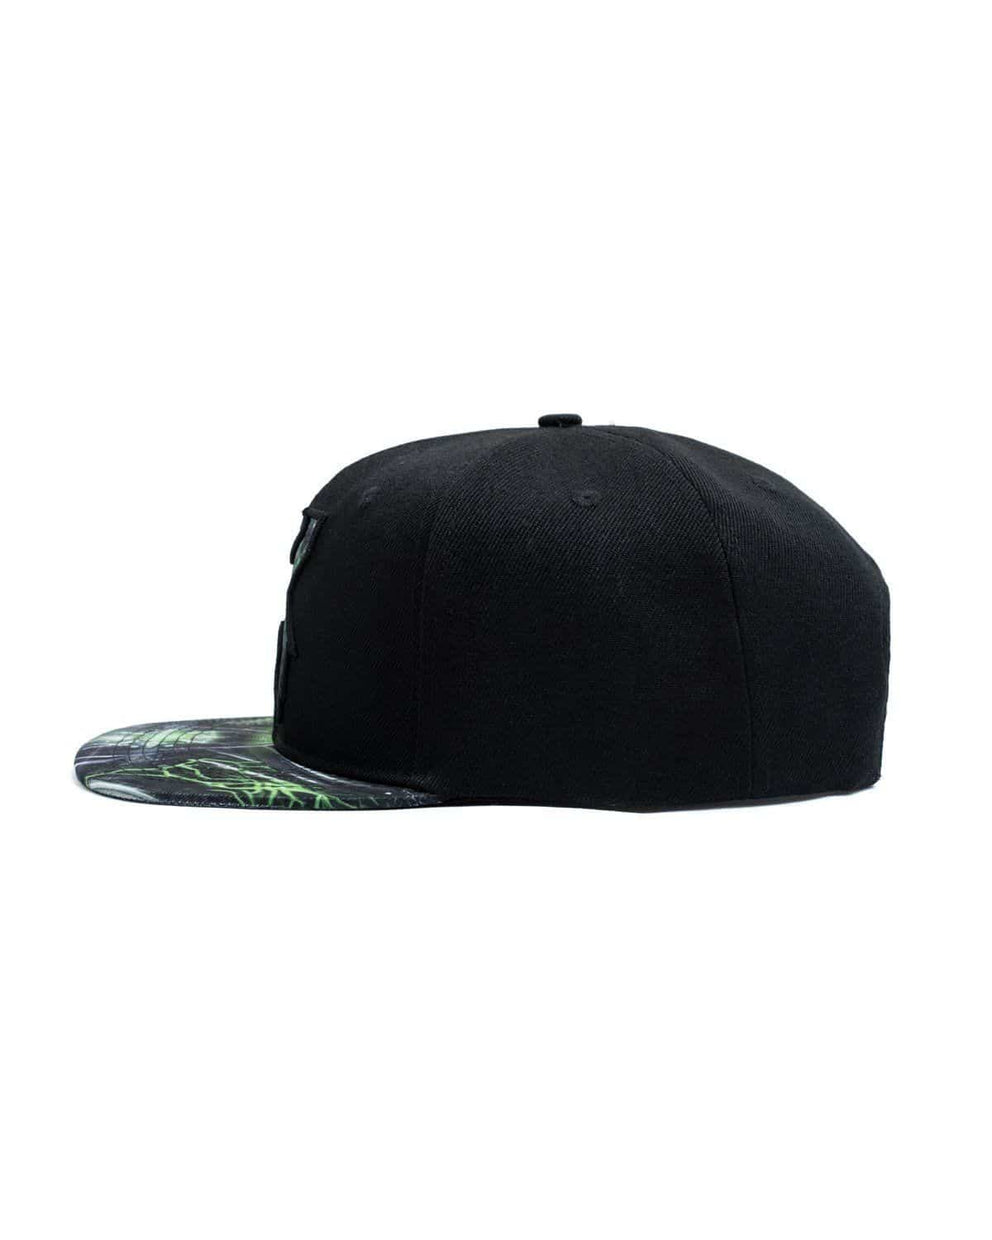 Excision 'The Paradox Tour 2018' Snapback - Black/Green